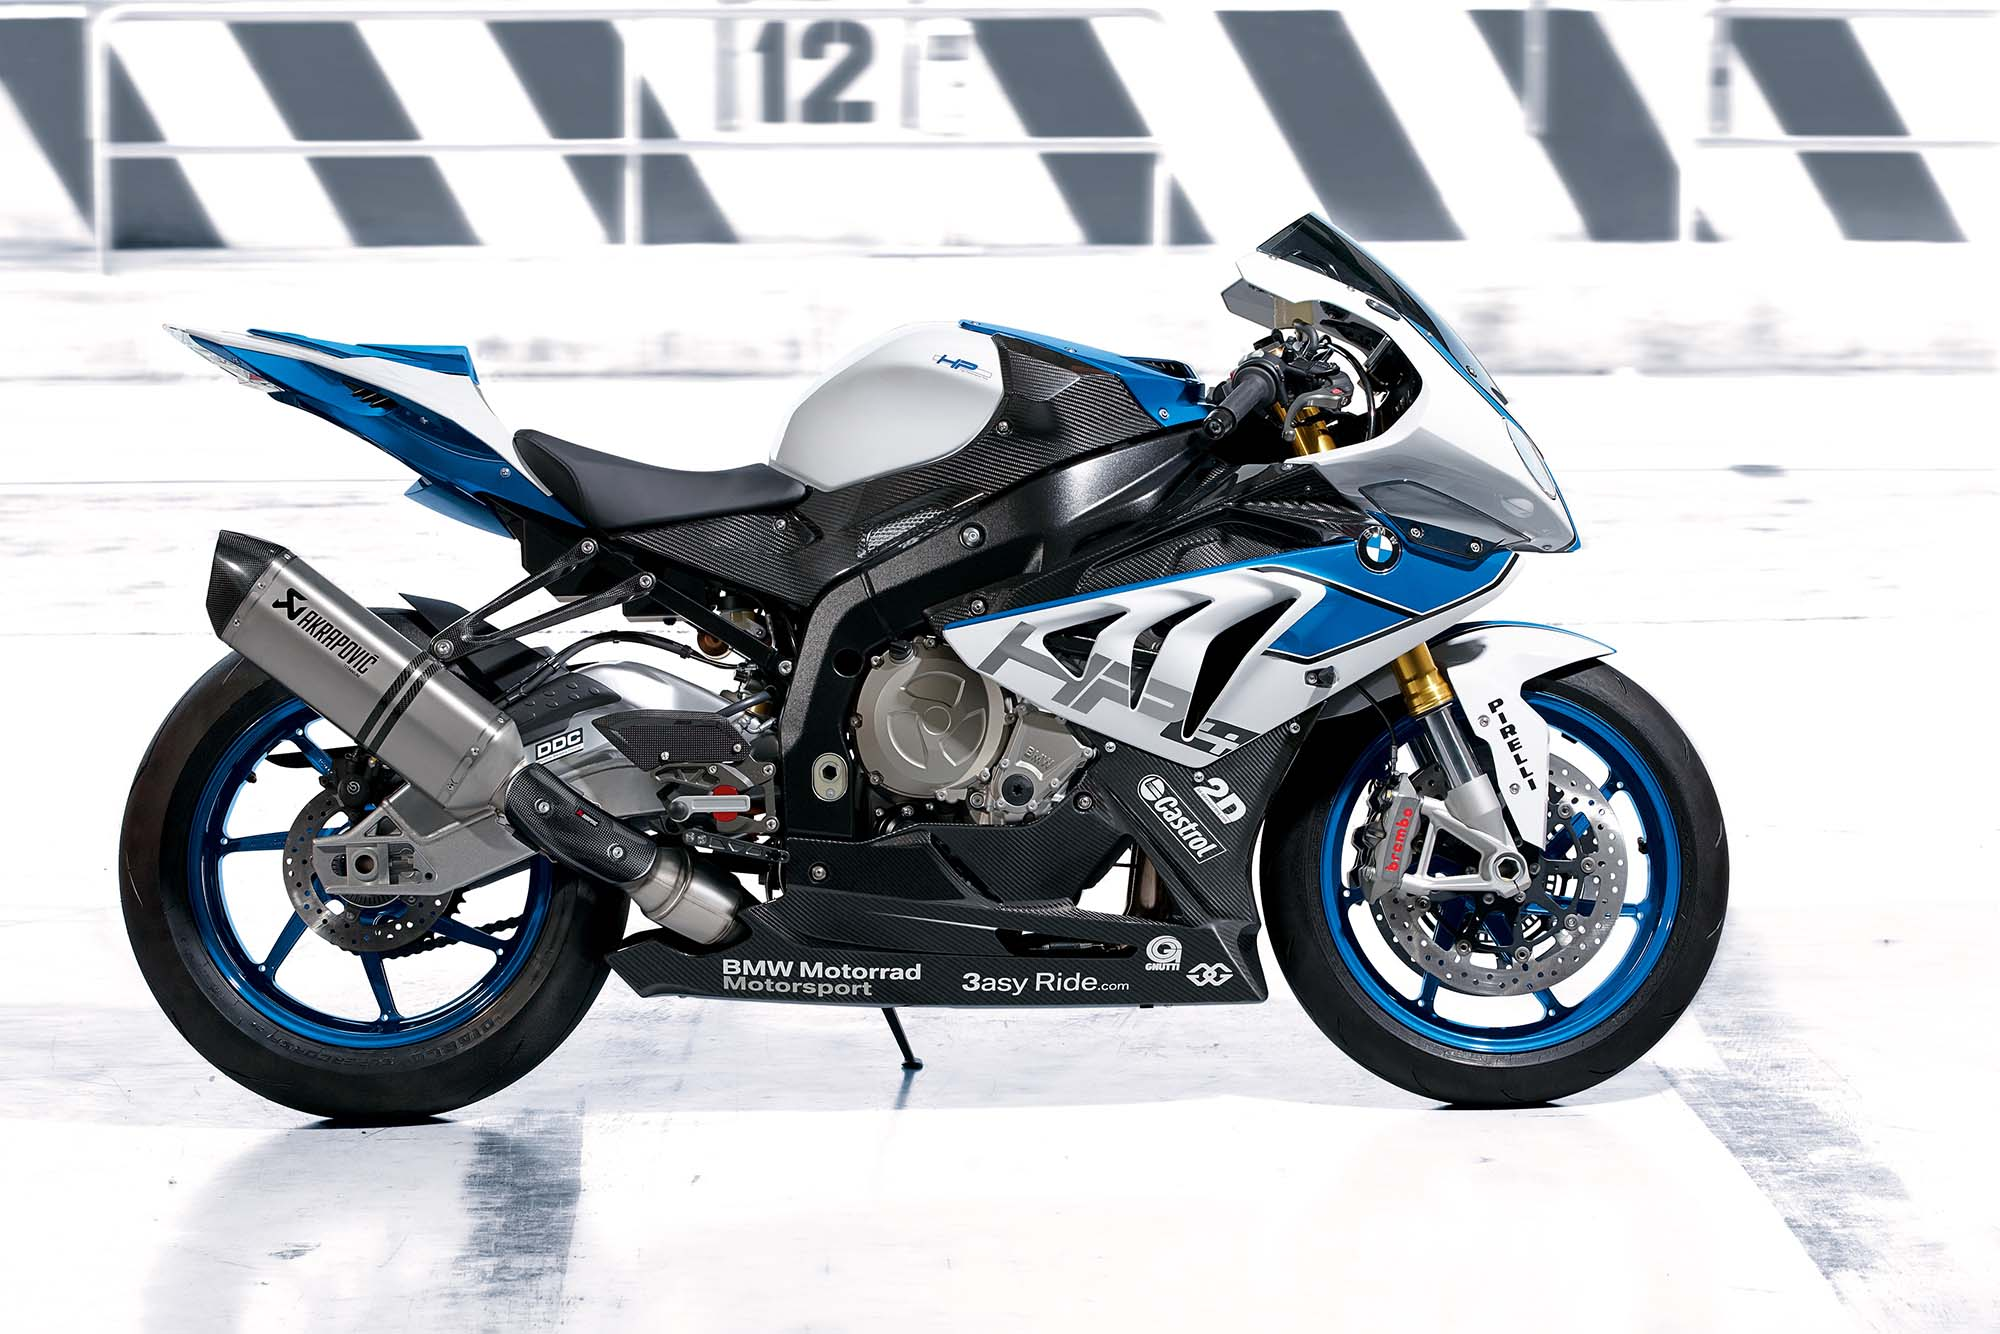 2015 BMW S1000RR HP4, The Last Superbike You'll Ever Need